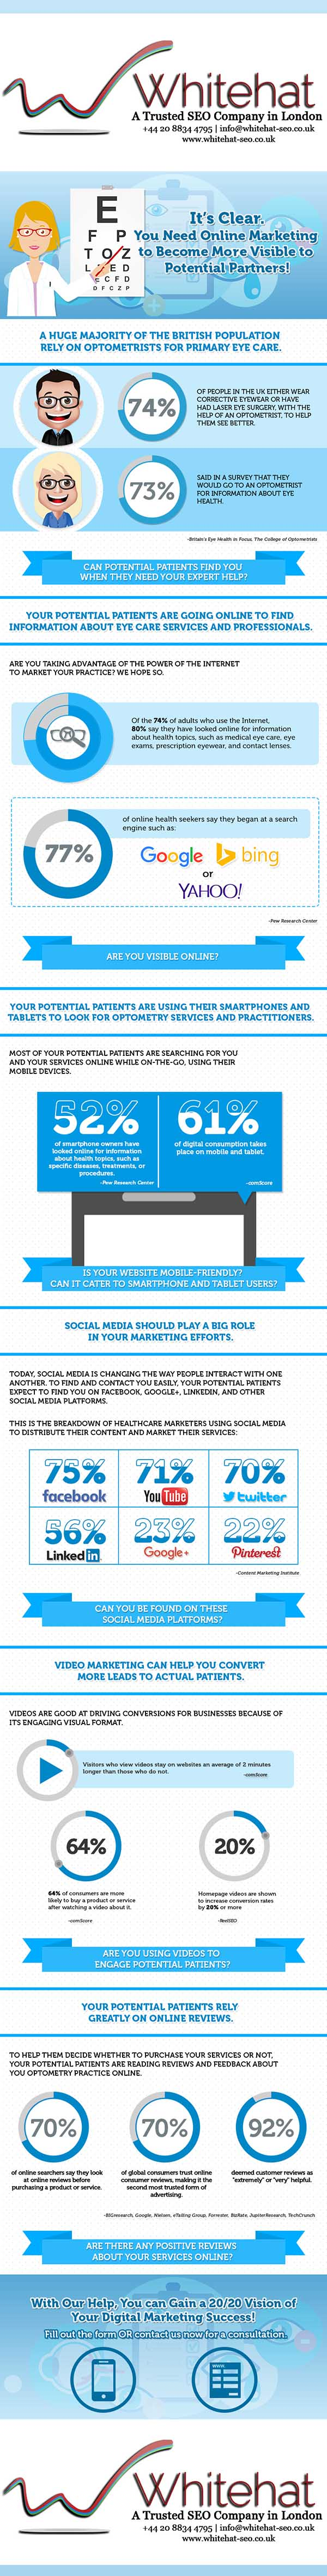 Infographic on Digital Marketing for Optometry Practice